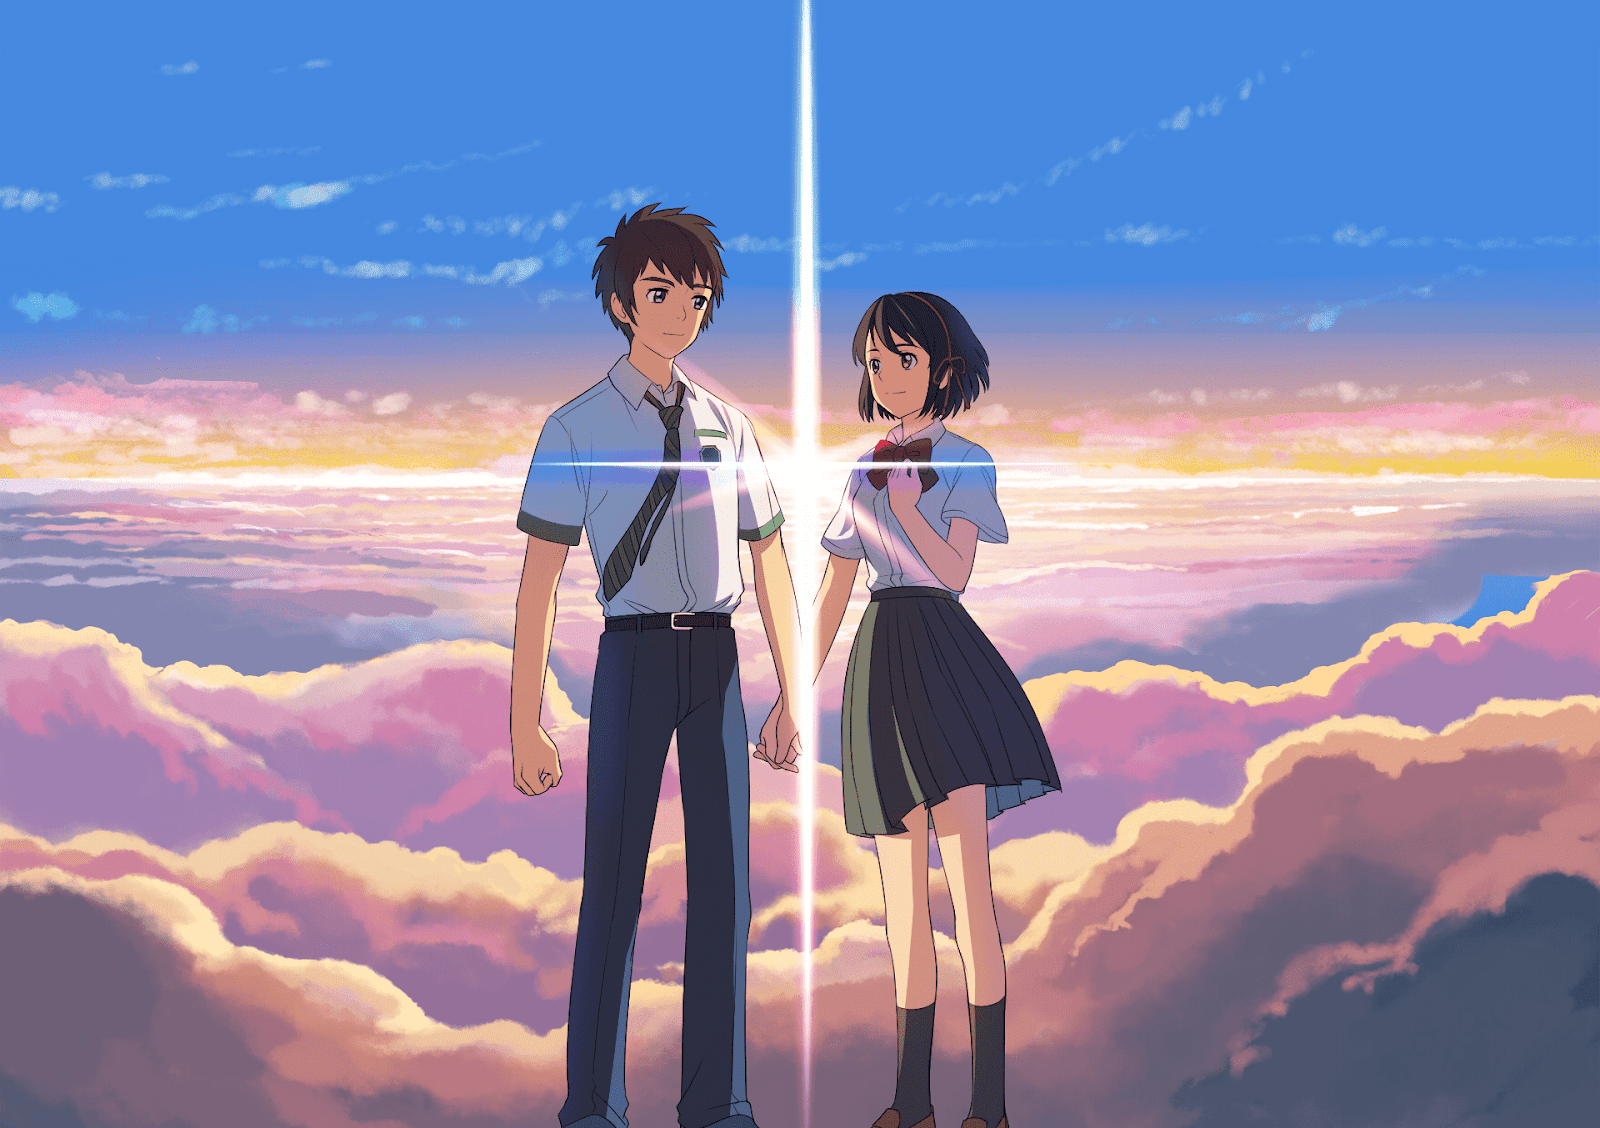 AowVN%2B%252857%2529 - [ Hình Nền ] Anime Your Name. - Kimi no Nawa full HD cực đẹp | Anime Wallpaper